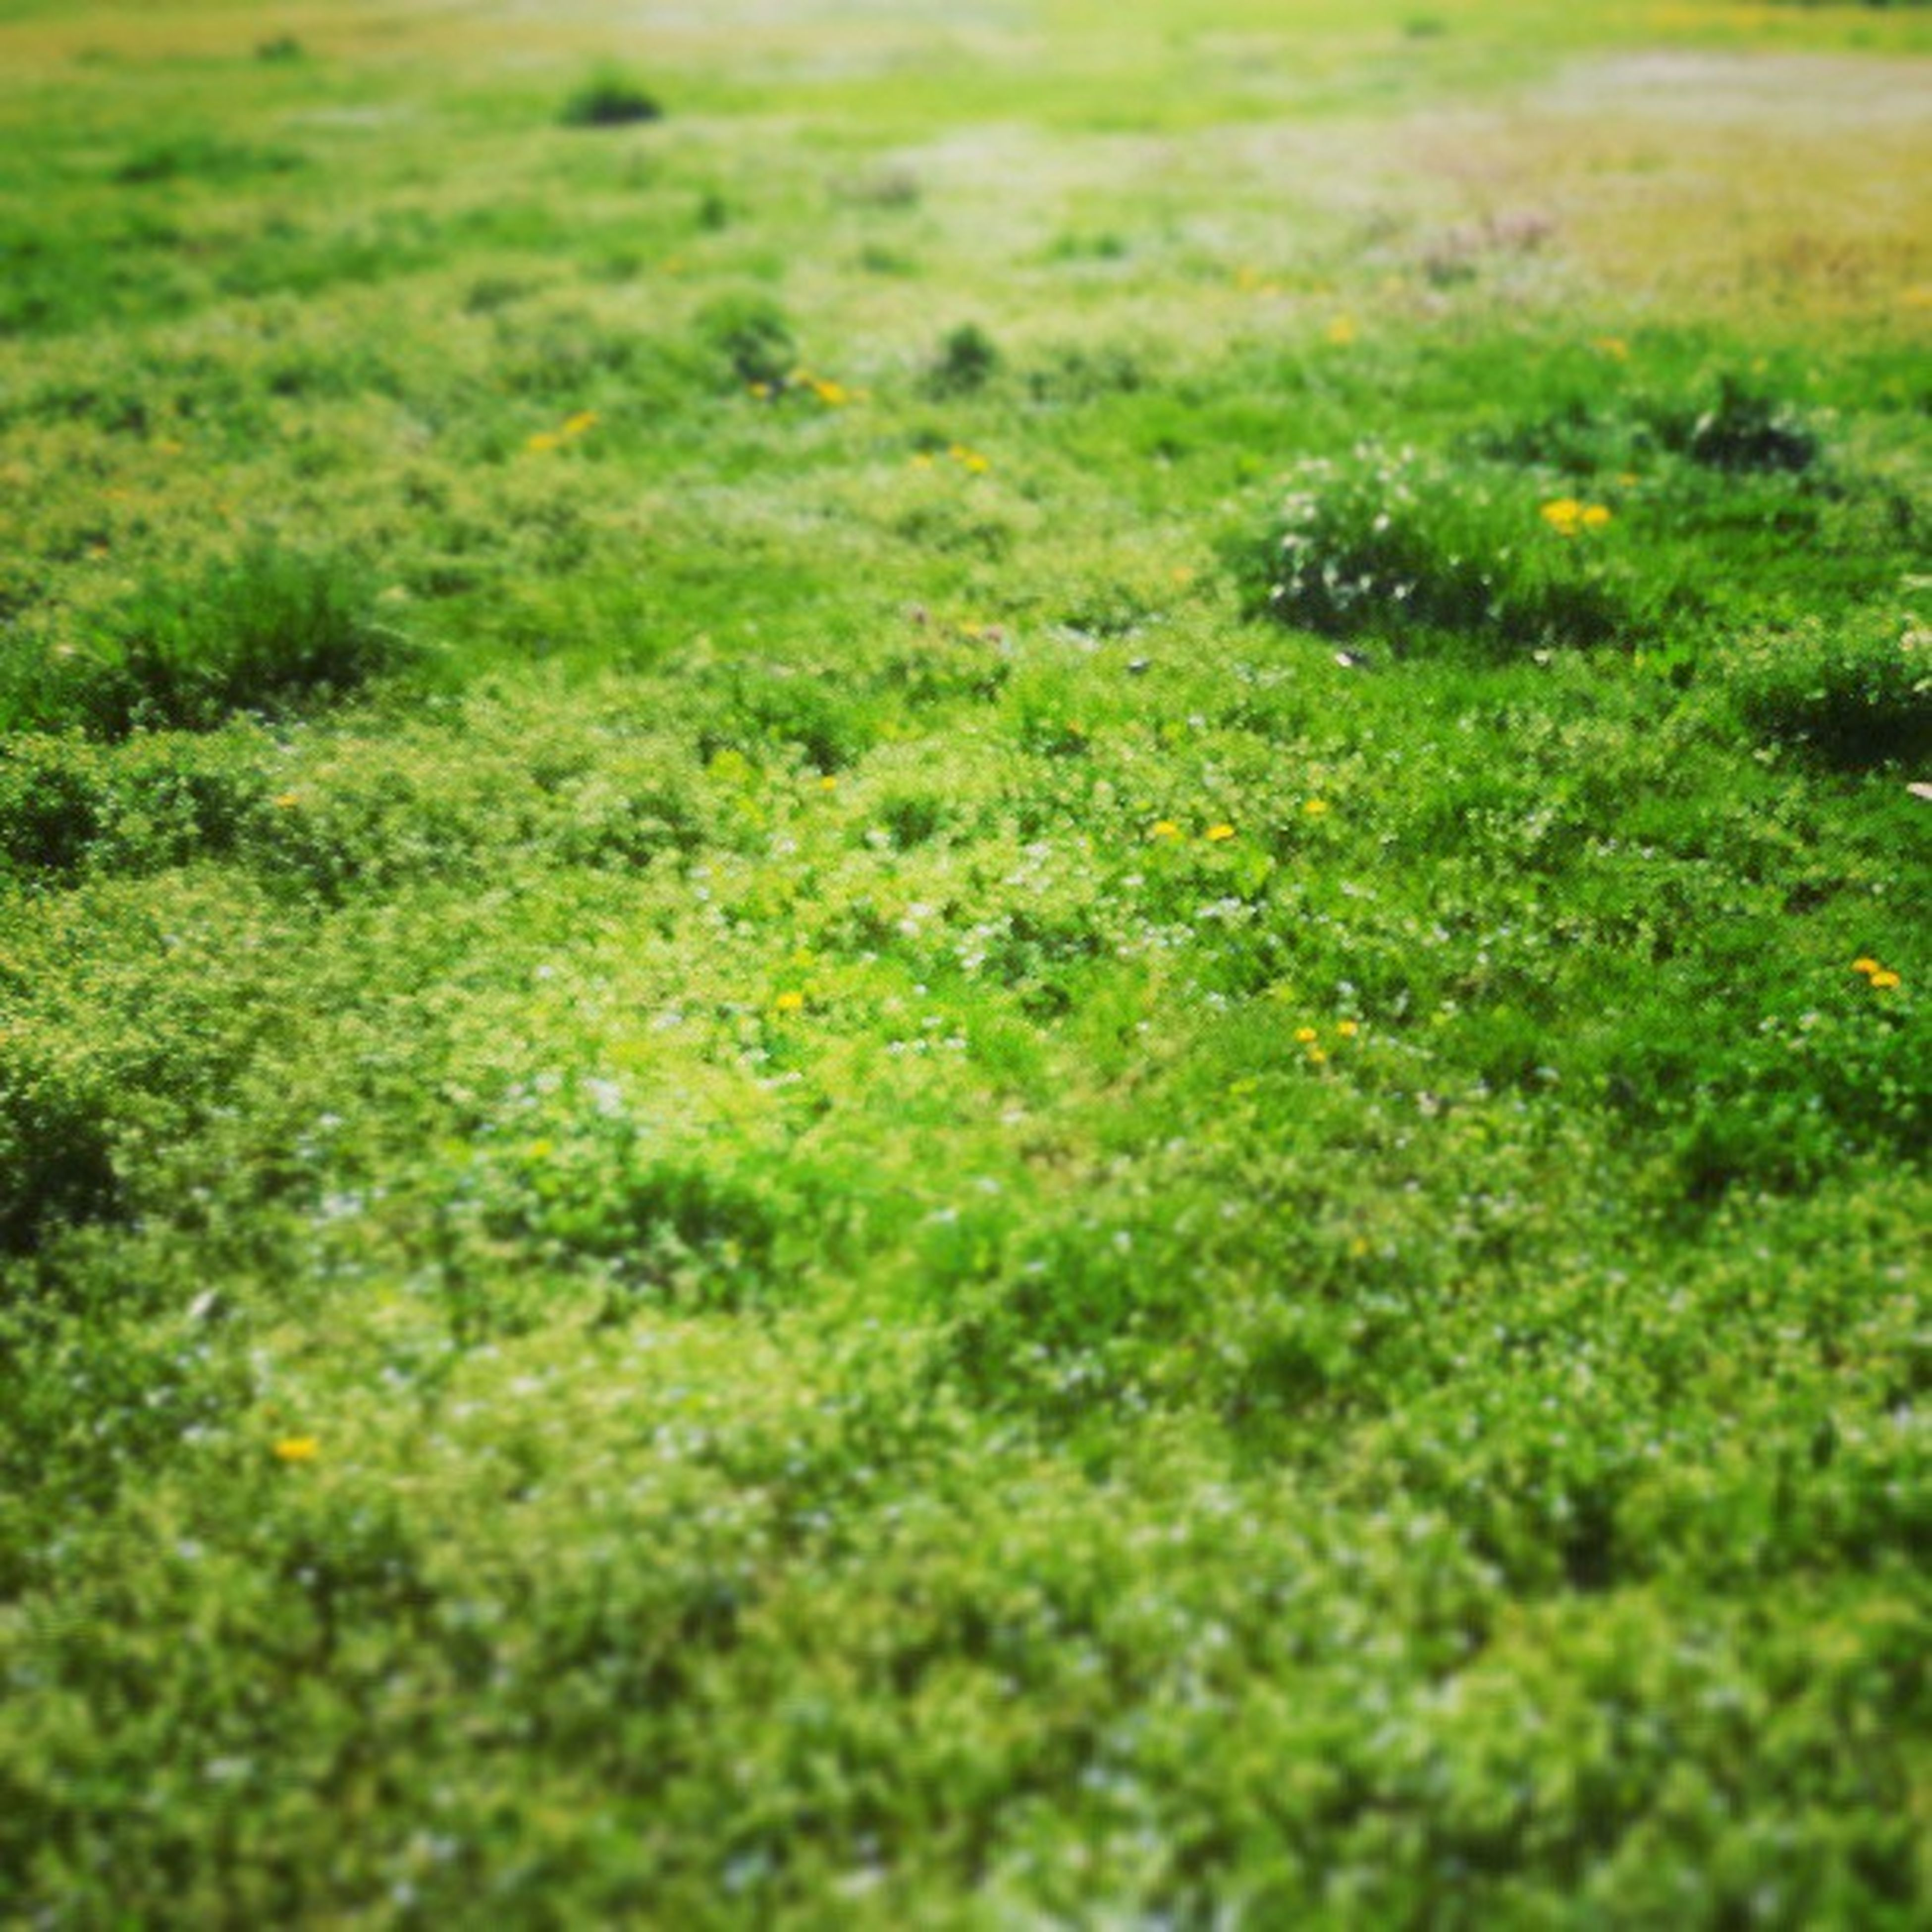 grass, green color, field, growth, grassy, selective focus, nature, beauty in nature, tranquility, plant, green, lush foliage, day, outdoors, no people, high angle view, surface level, landscape, sunlight, close-up